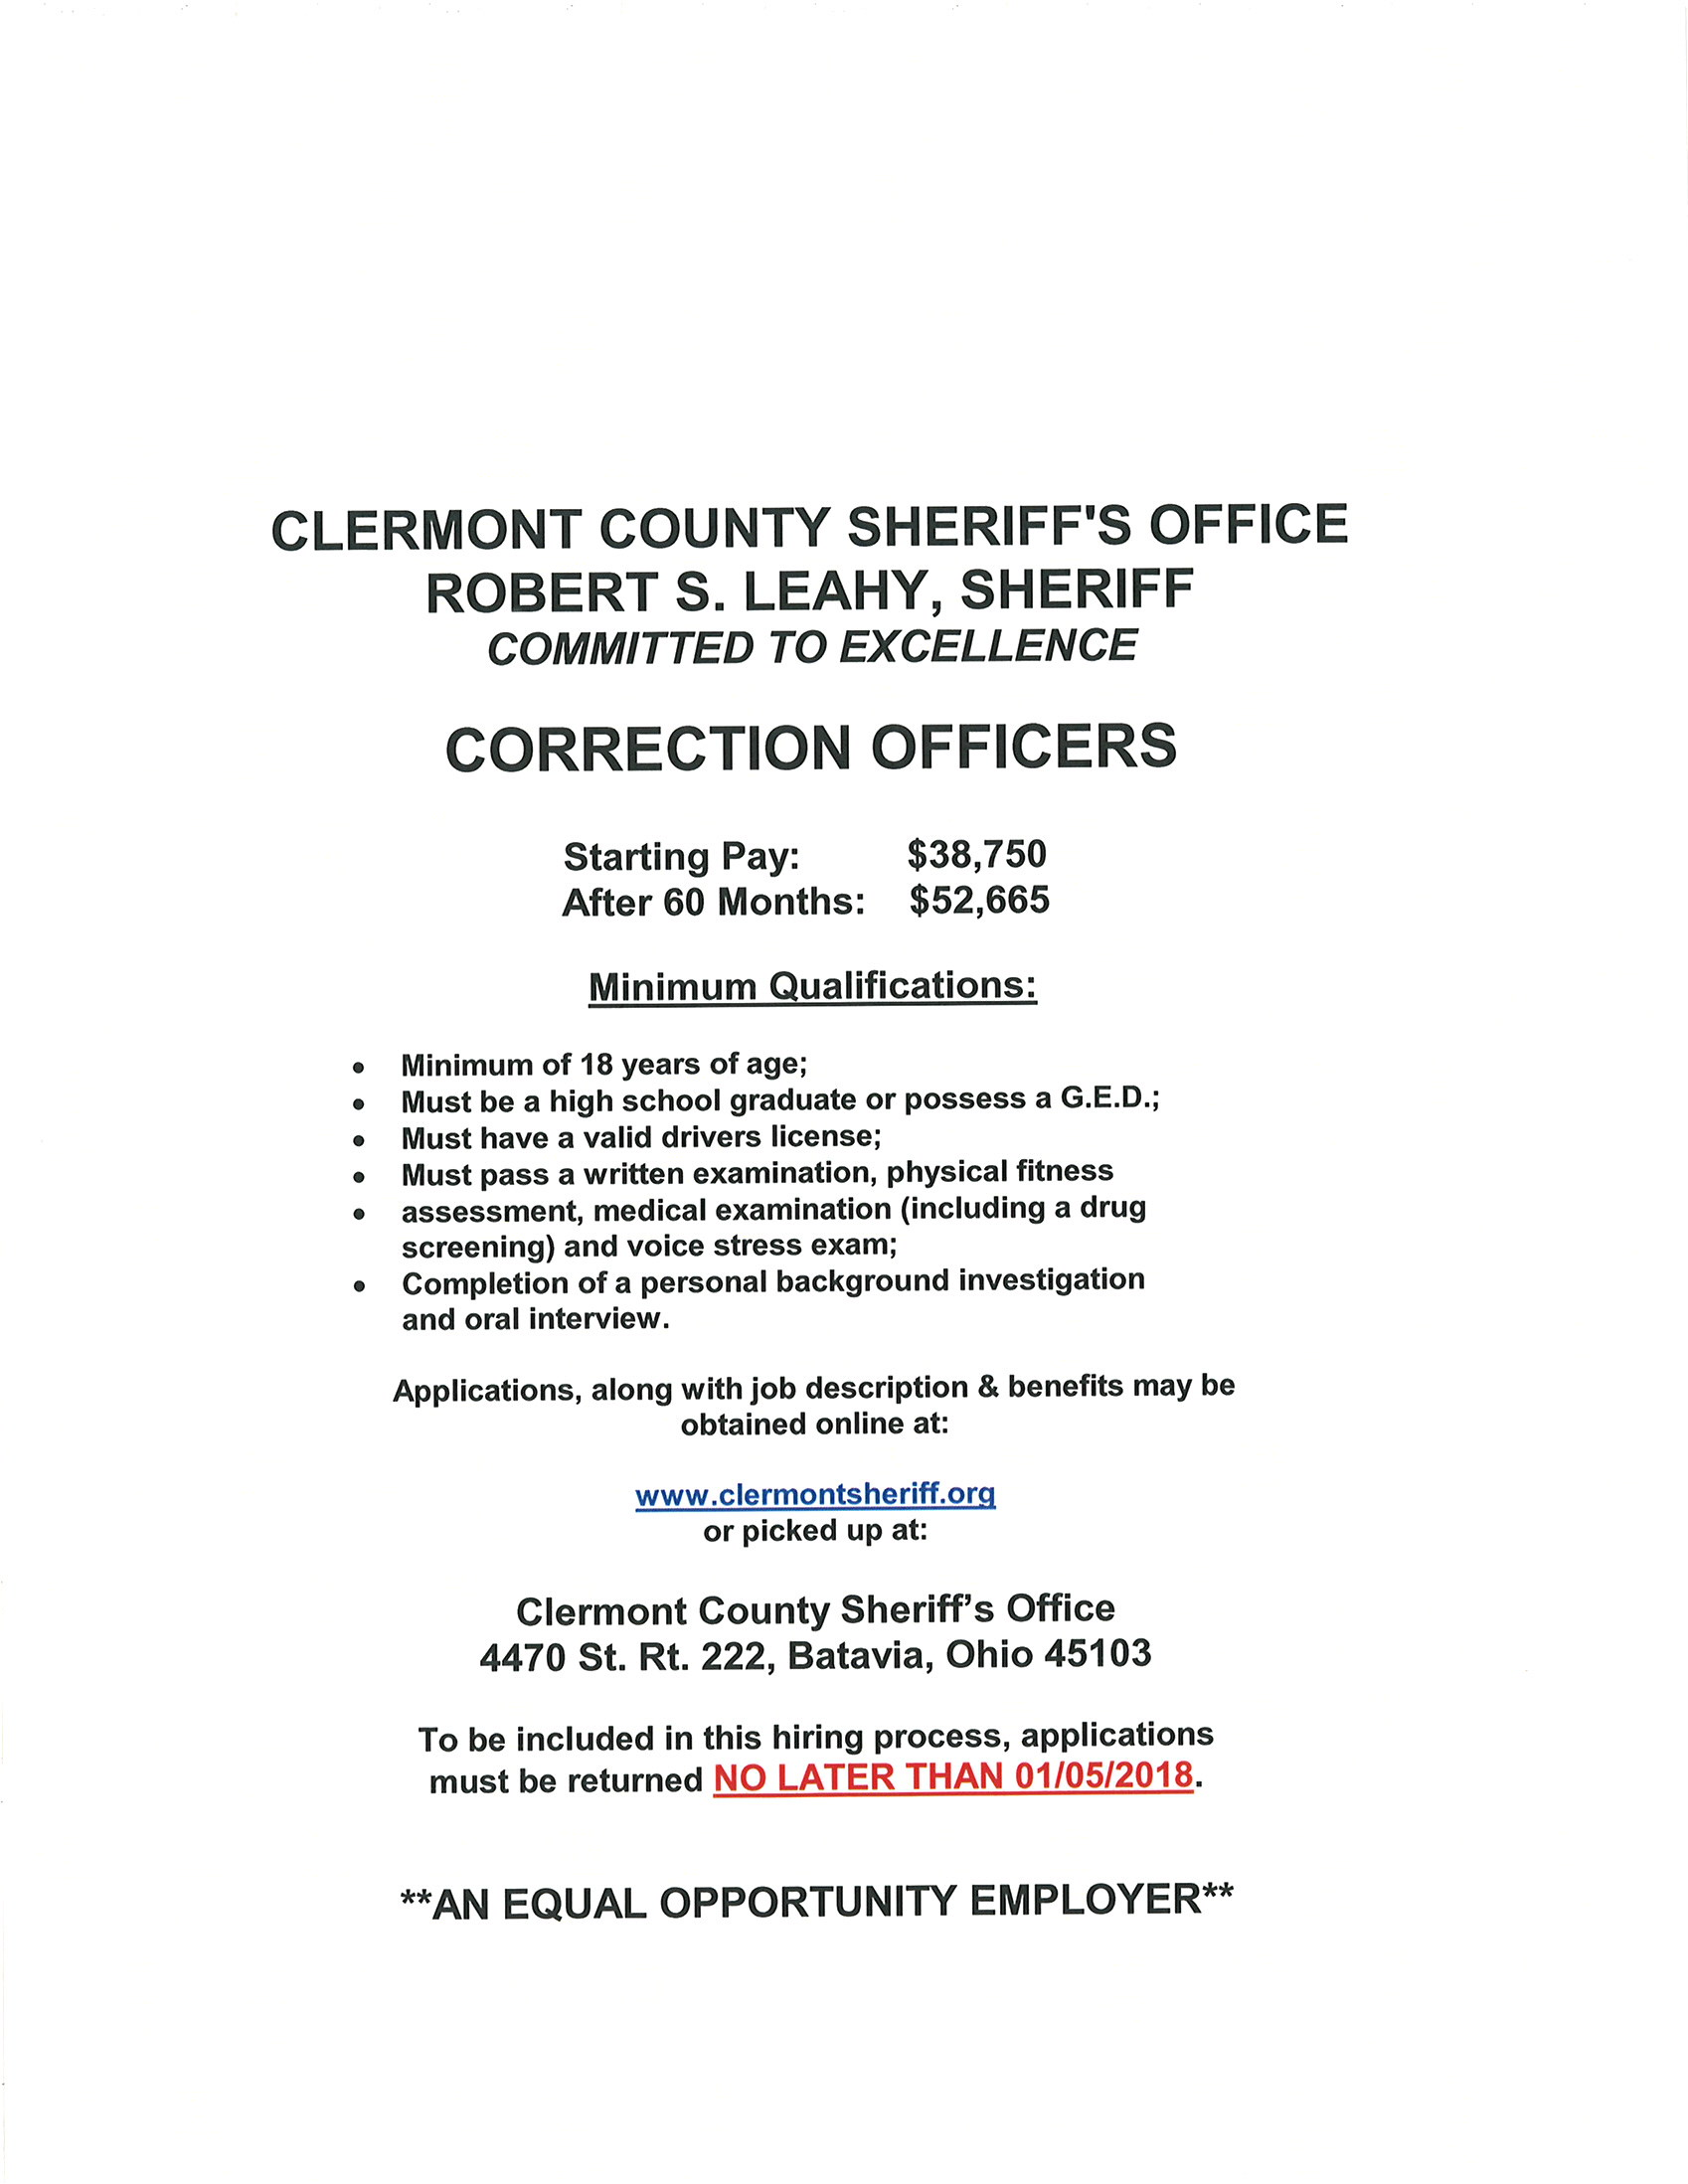 Clermont County Sheriff